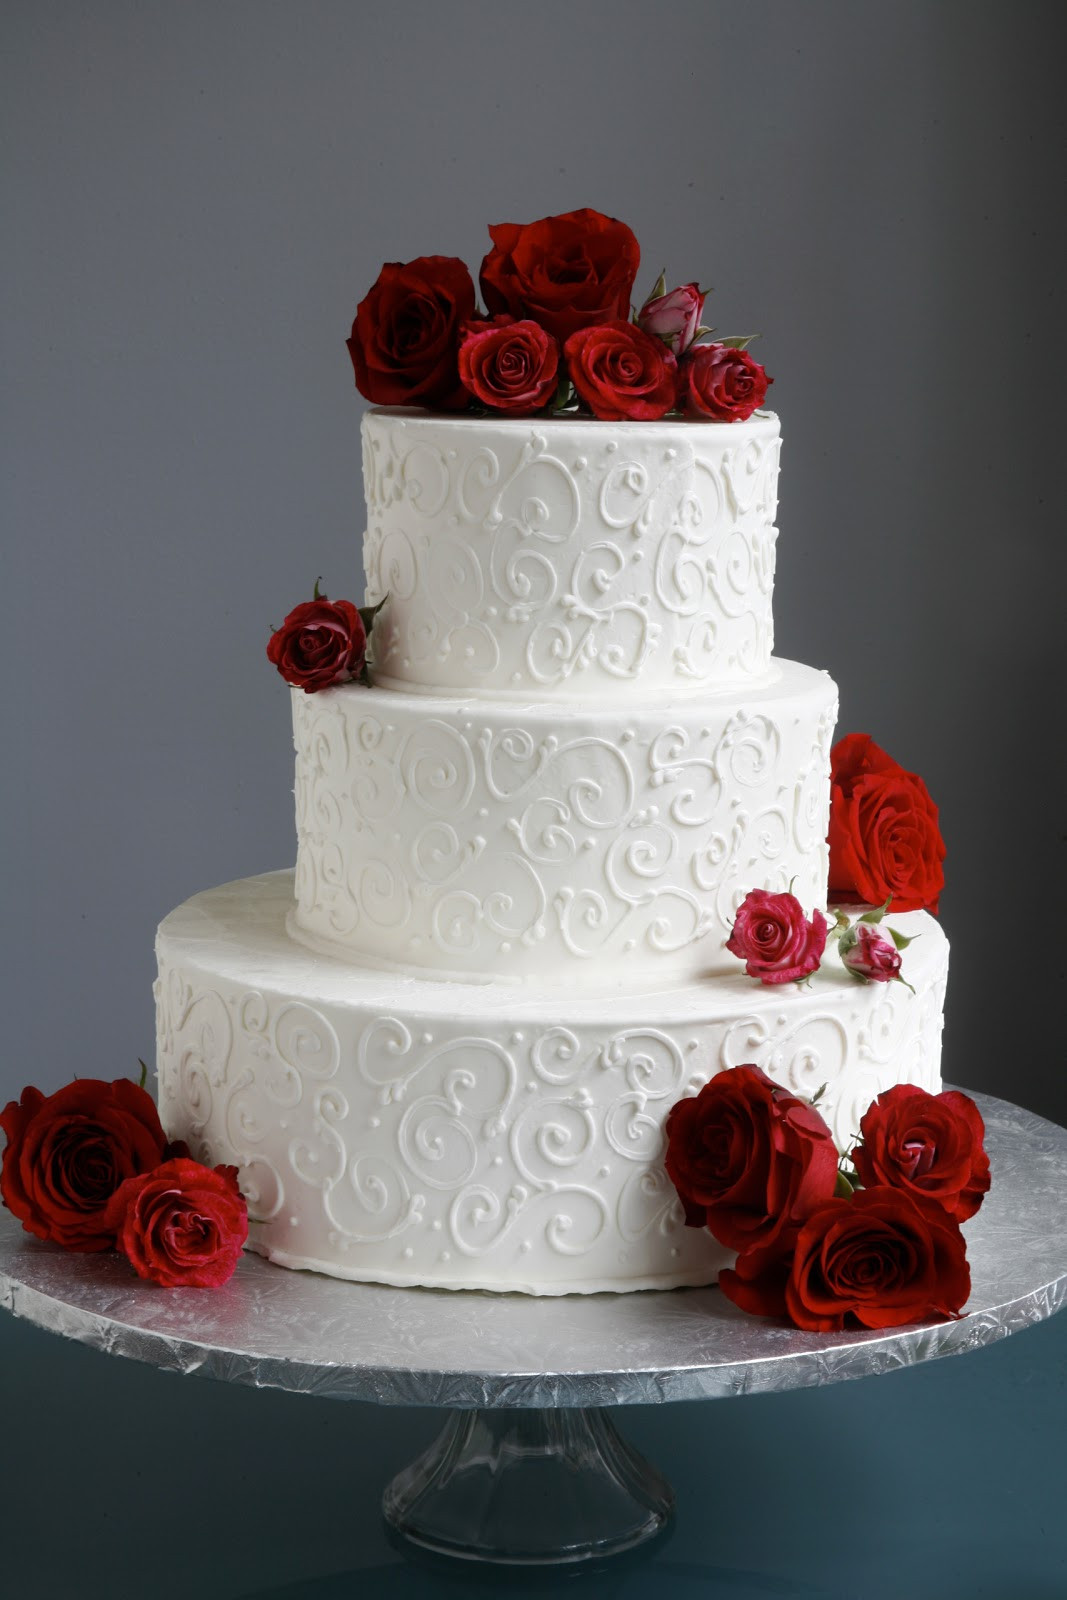 Wedding Cakes Rose  A Simple Cake Wedding Cake with Fresh Flowers From